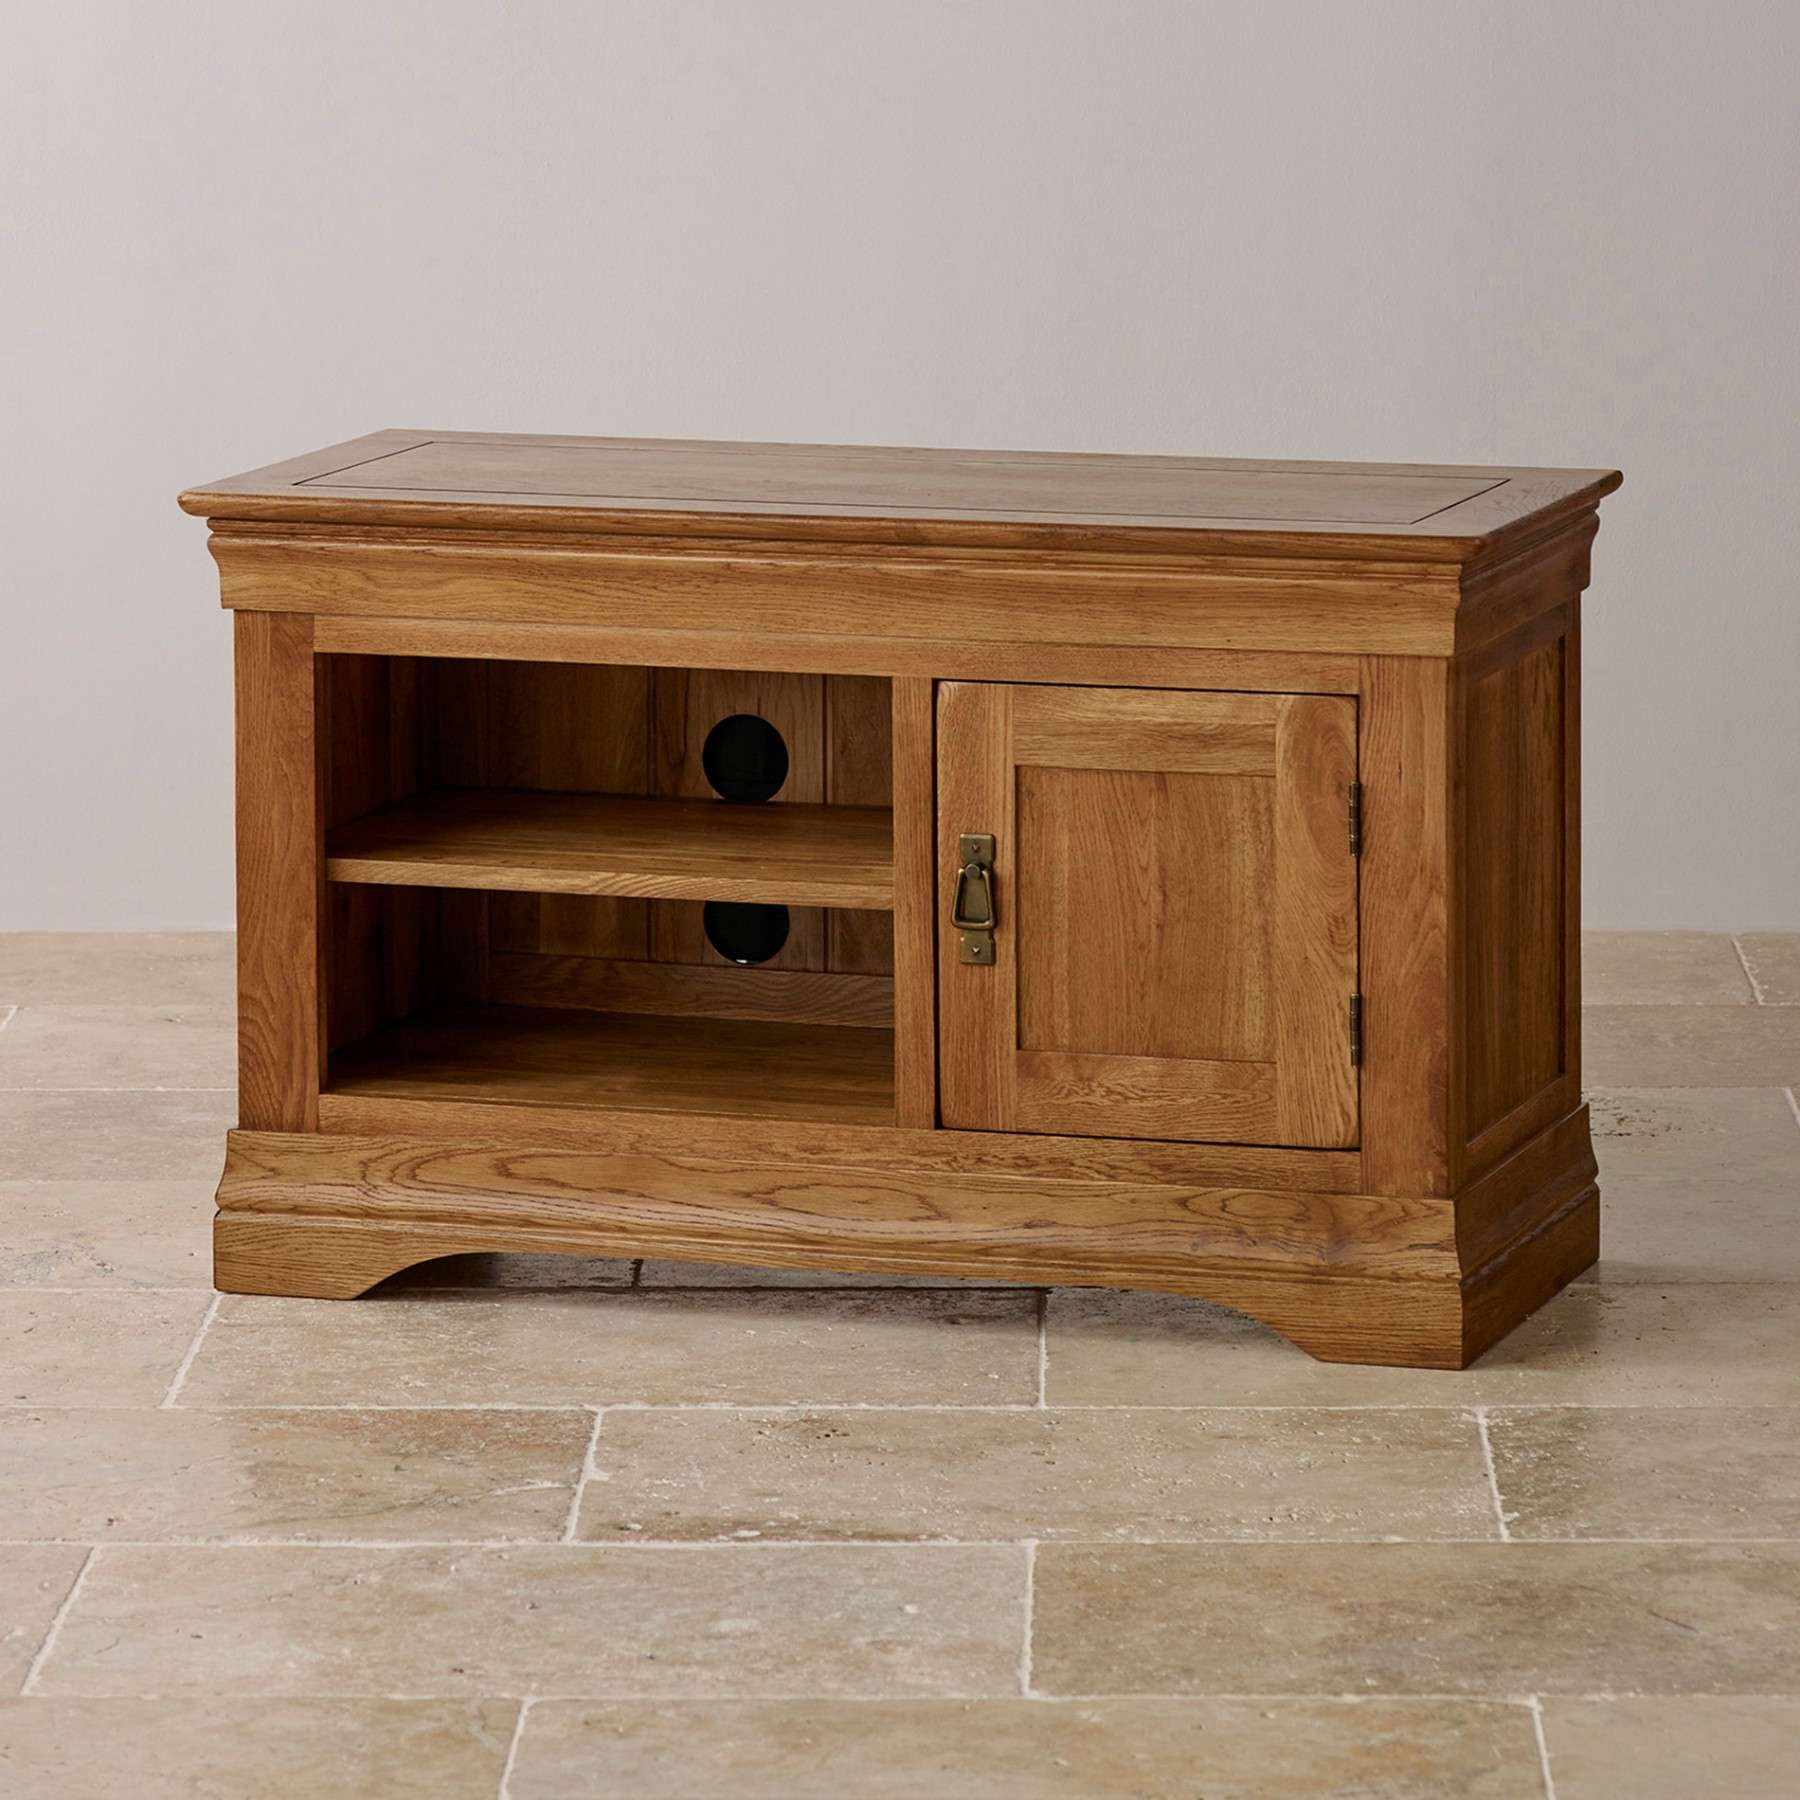 French Farmhouse Rustic Solid Oak Small Tv Stand Oak Furniture Land With Rustic Oak Tv Stands (View 5 of 15)